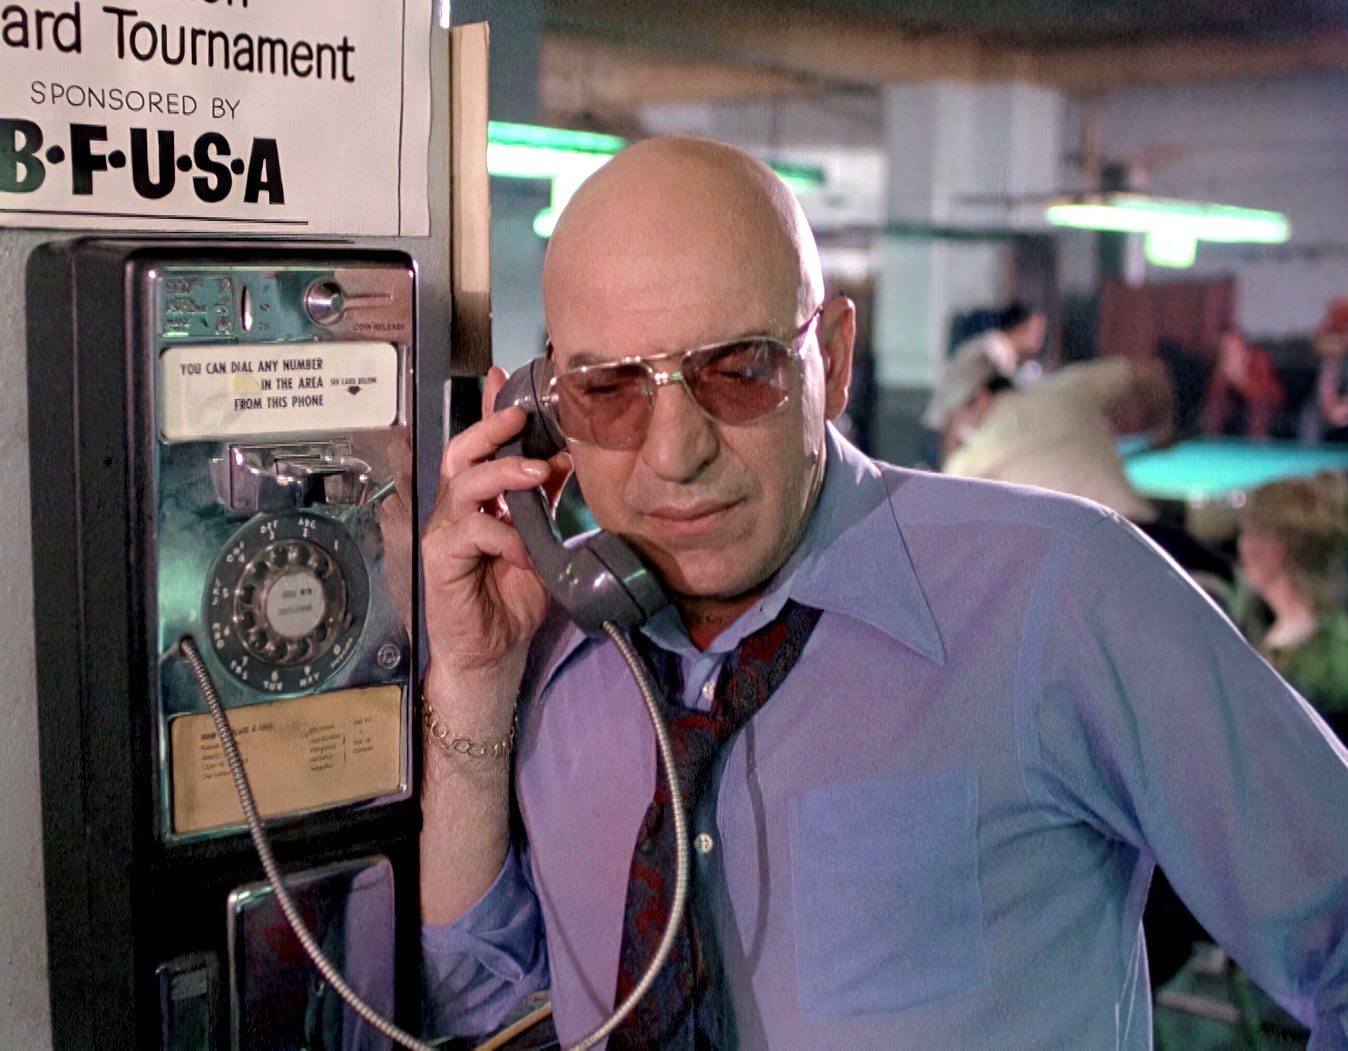 Kojak on vintage pay phone with rotary dial